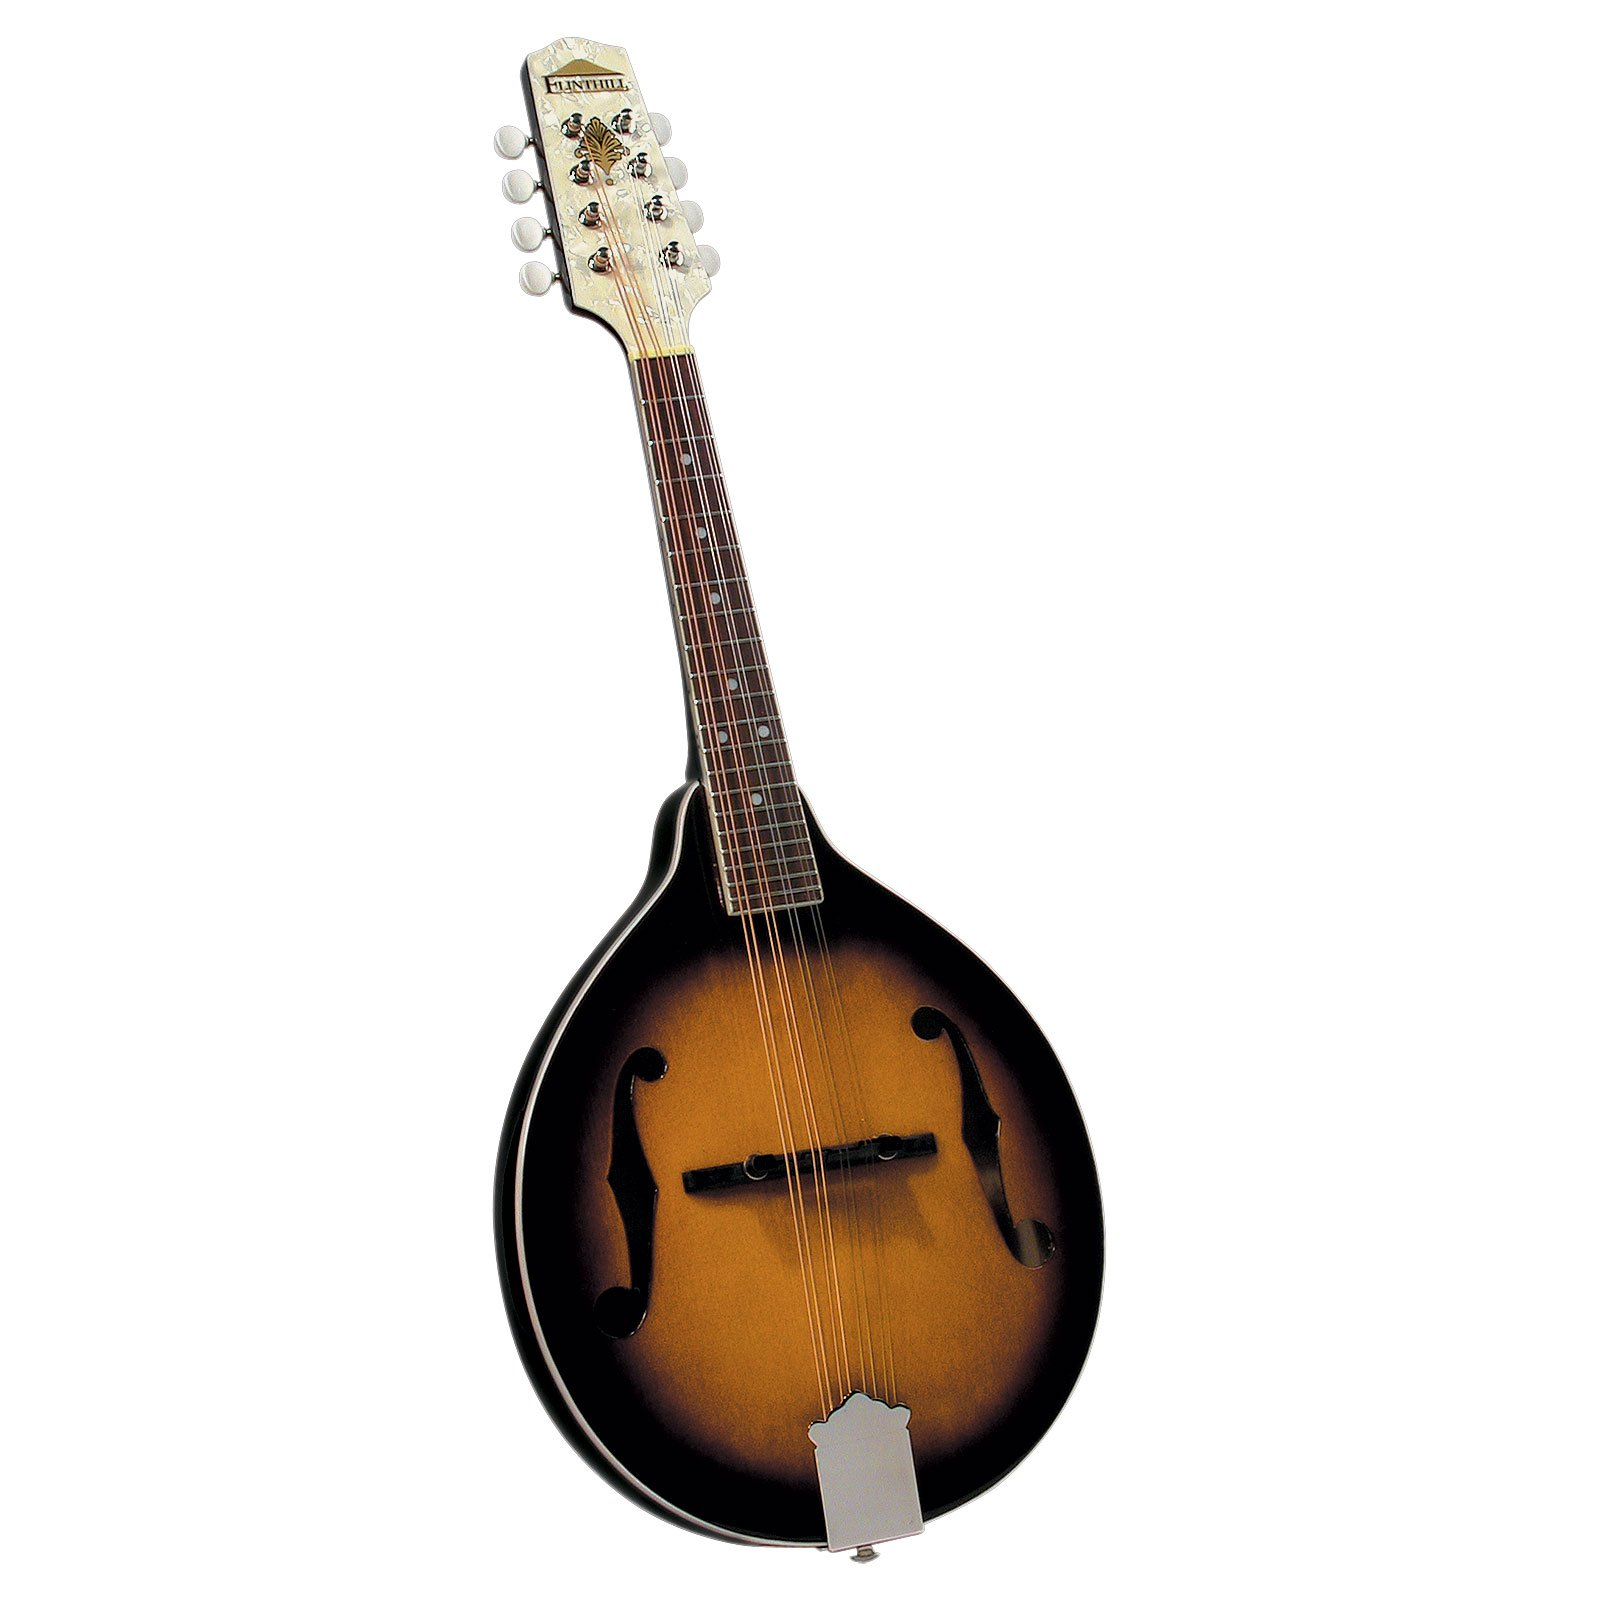 Flinthill FHM-50 Traditional A-Model Mandolin - Sunburst by Flinthill (Image #1)